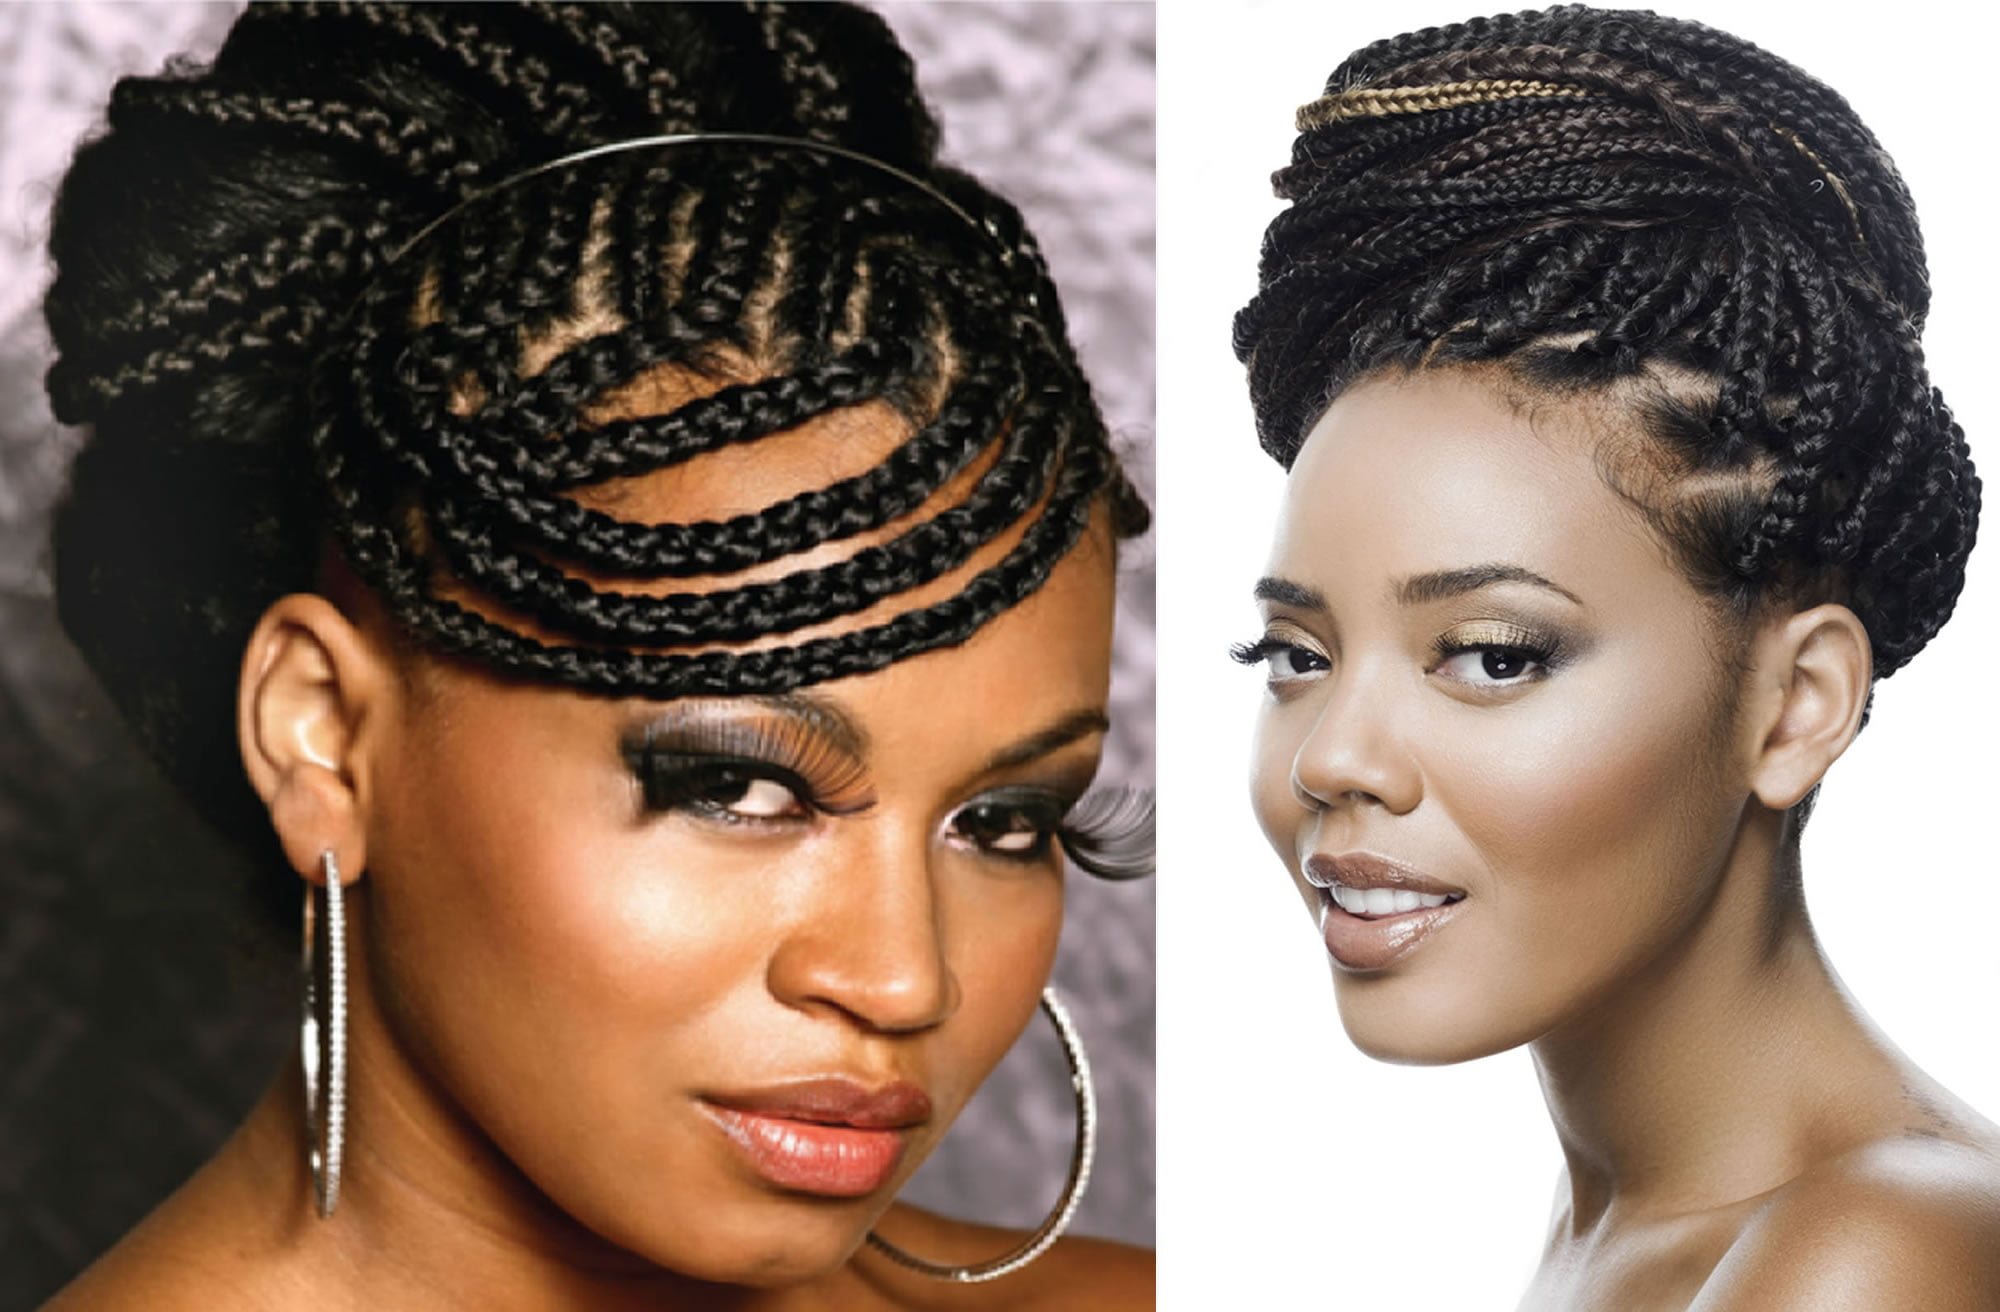 35 glorious braided hairstyles for black women 20212022